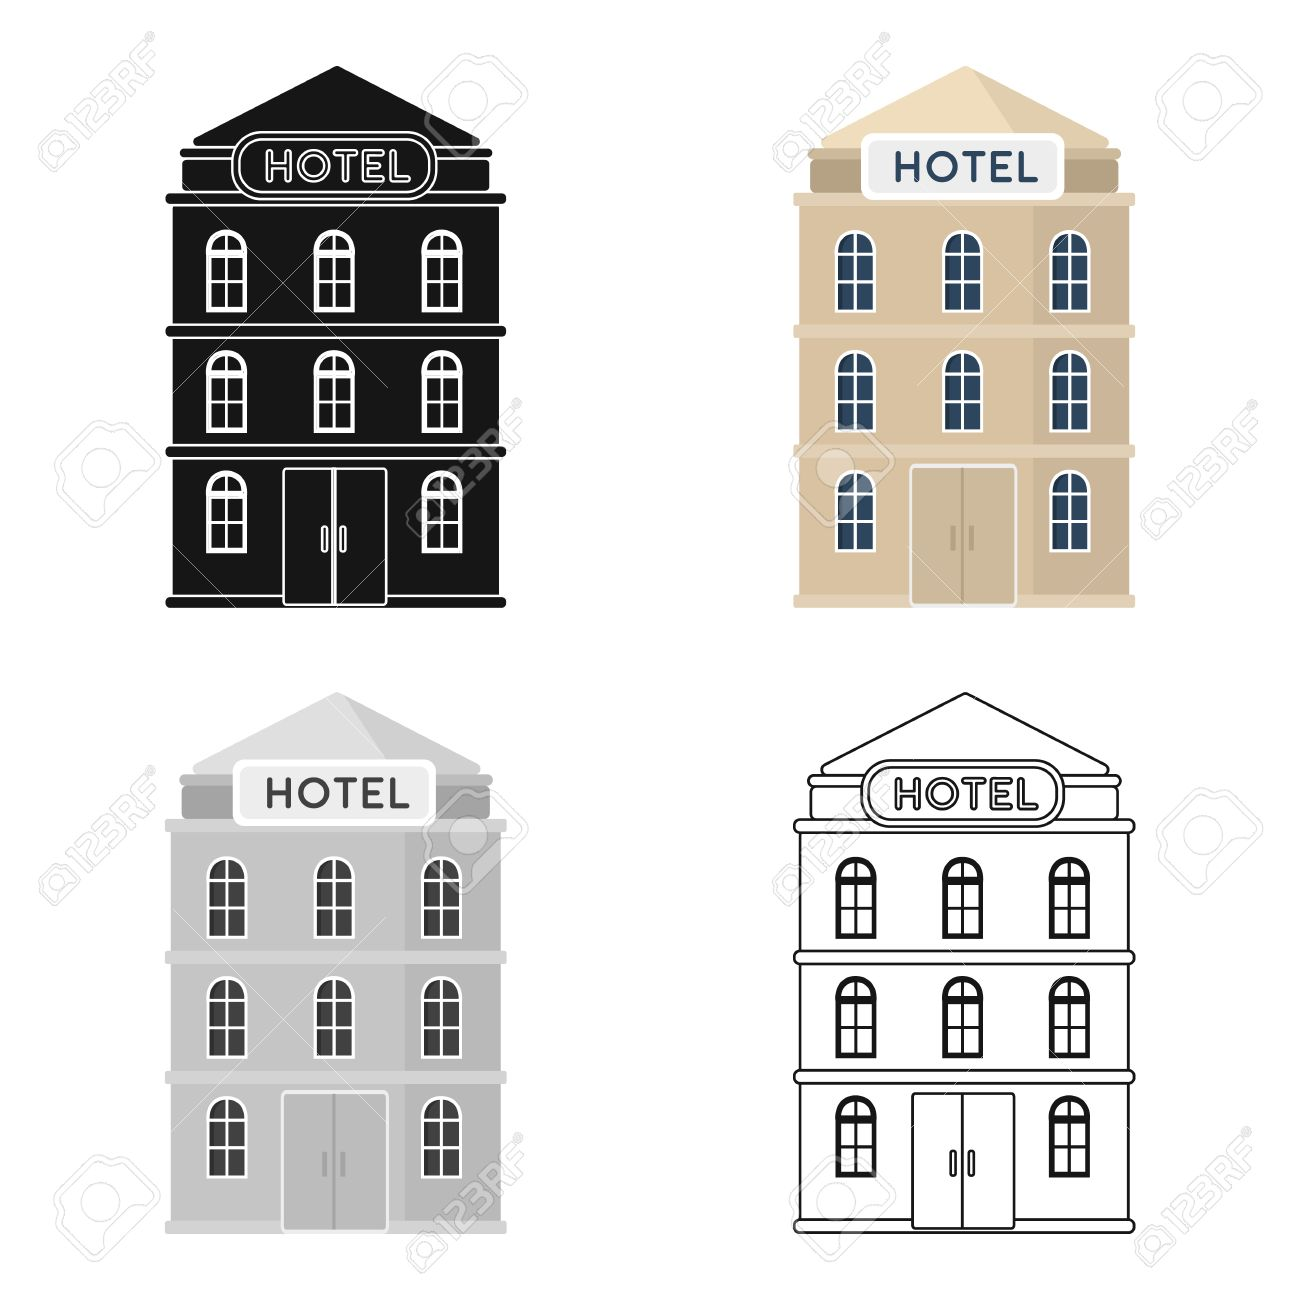 Hotel building icon in cartoon style isolated on white background hotel building icon in cartoon style isolated on white background rest and travel symbol stock biocorpaavc